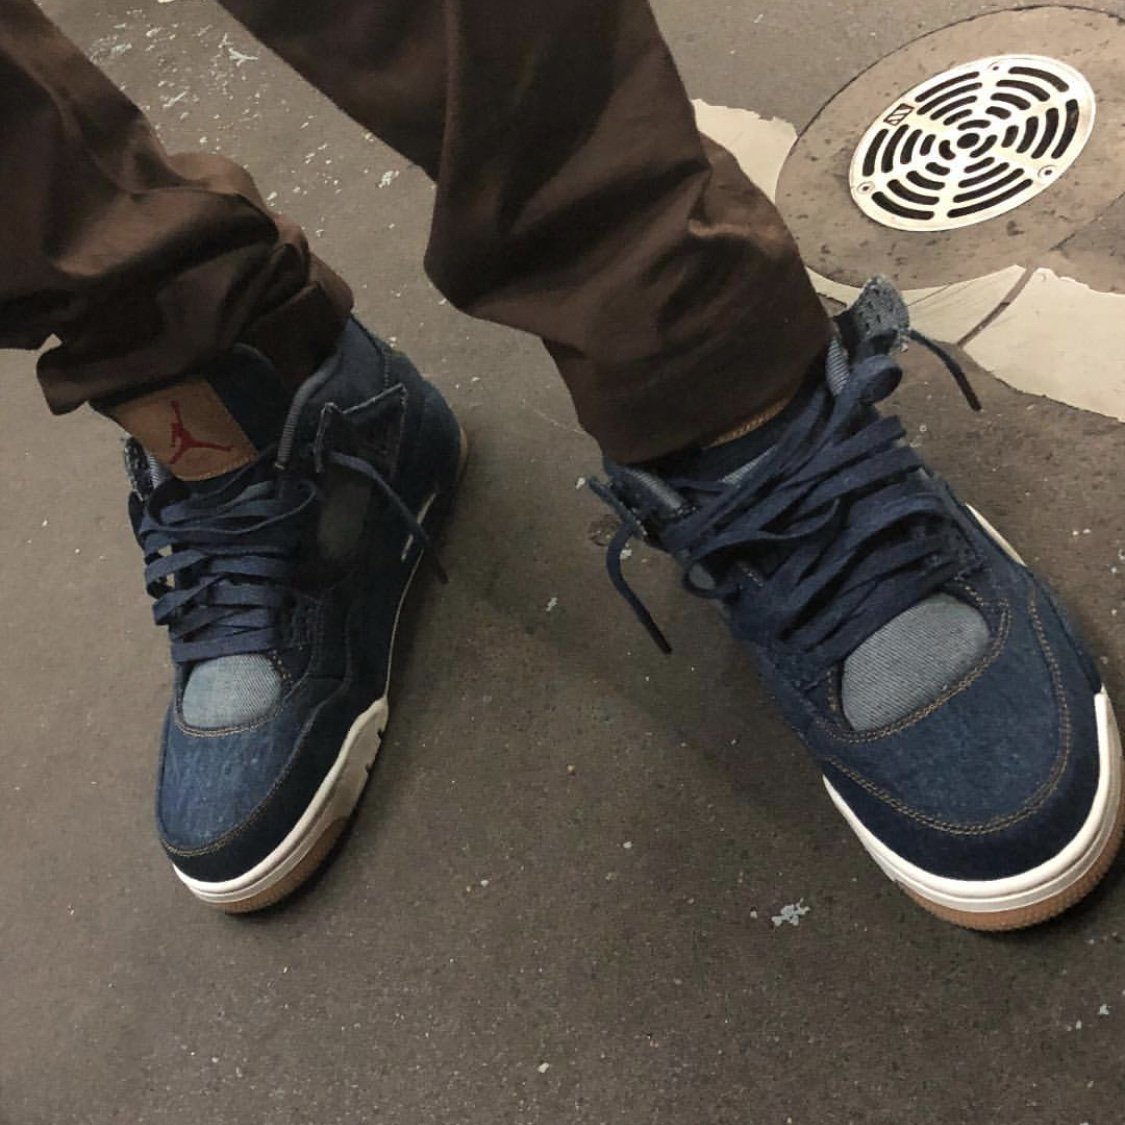 c98d6ee0179a Levi s x Air Jordan 4. Color  Denim Denim-Sail-Game Red Style Code   AO2571-401. Release Date  January 17